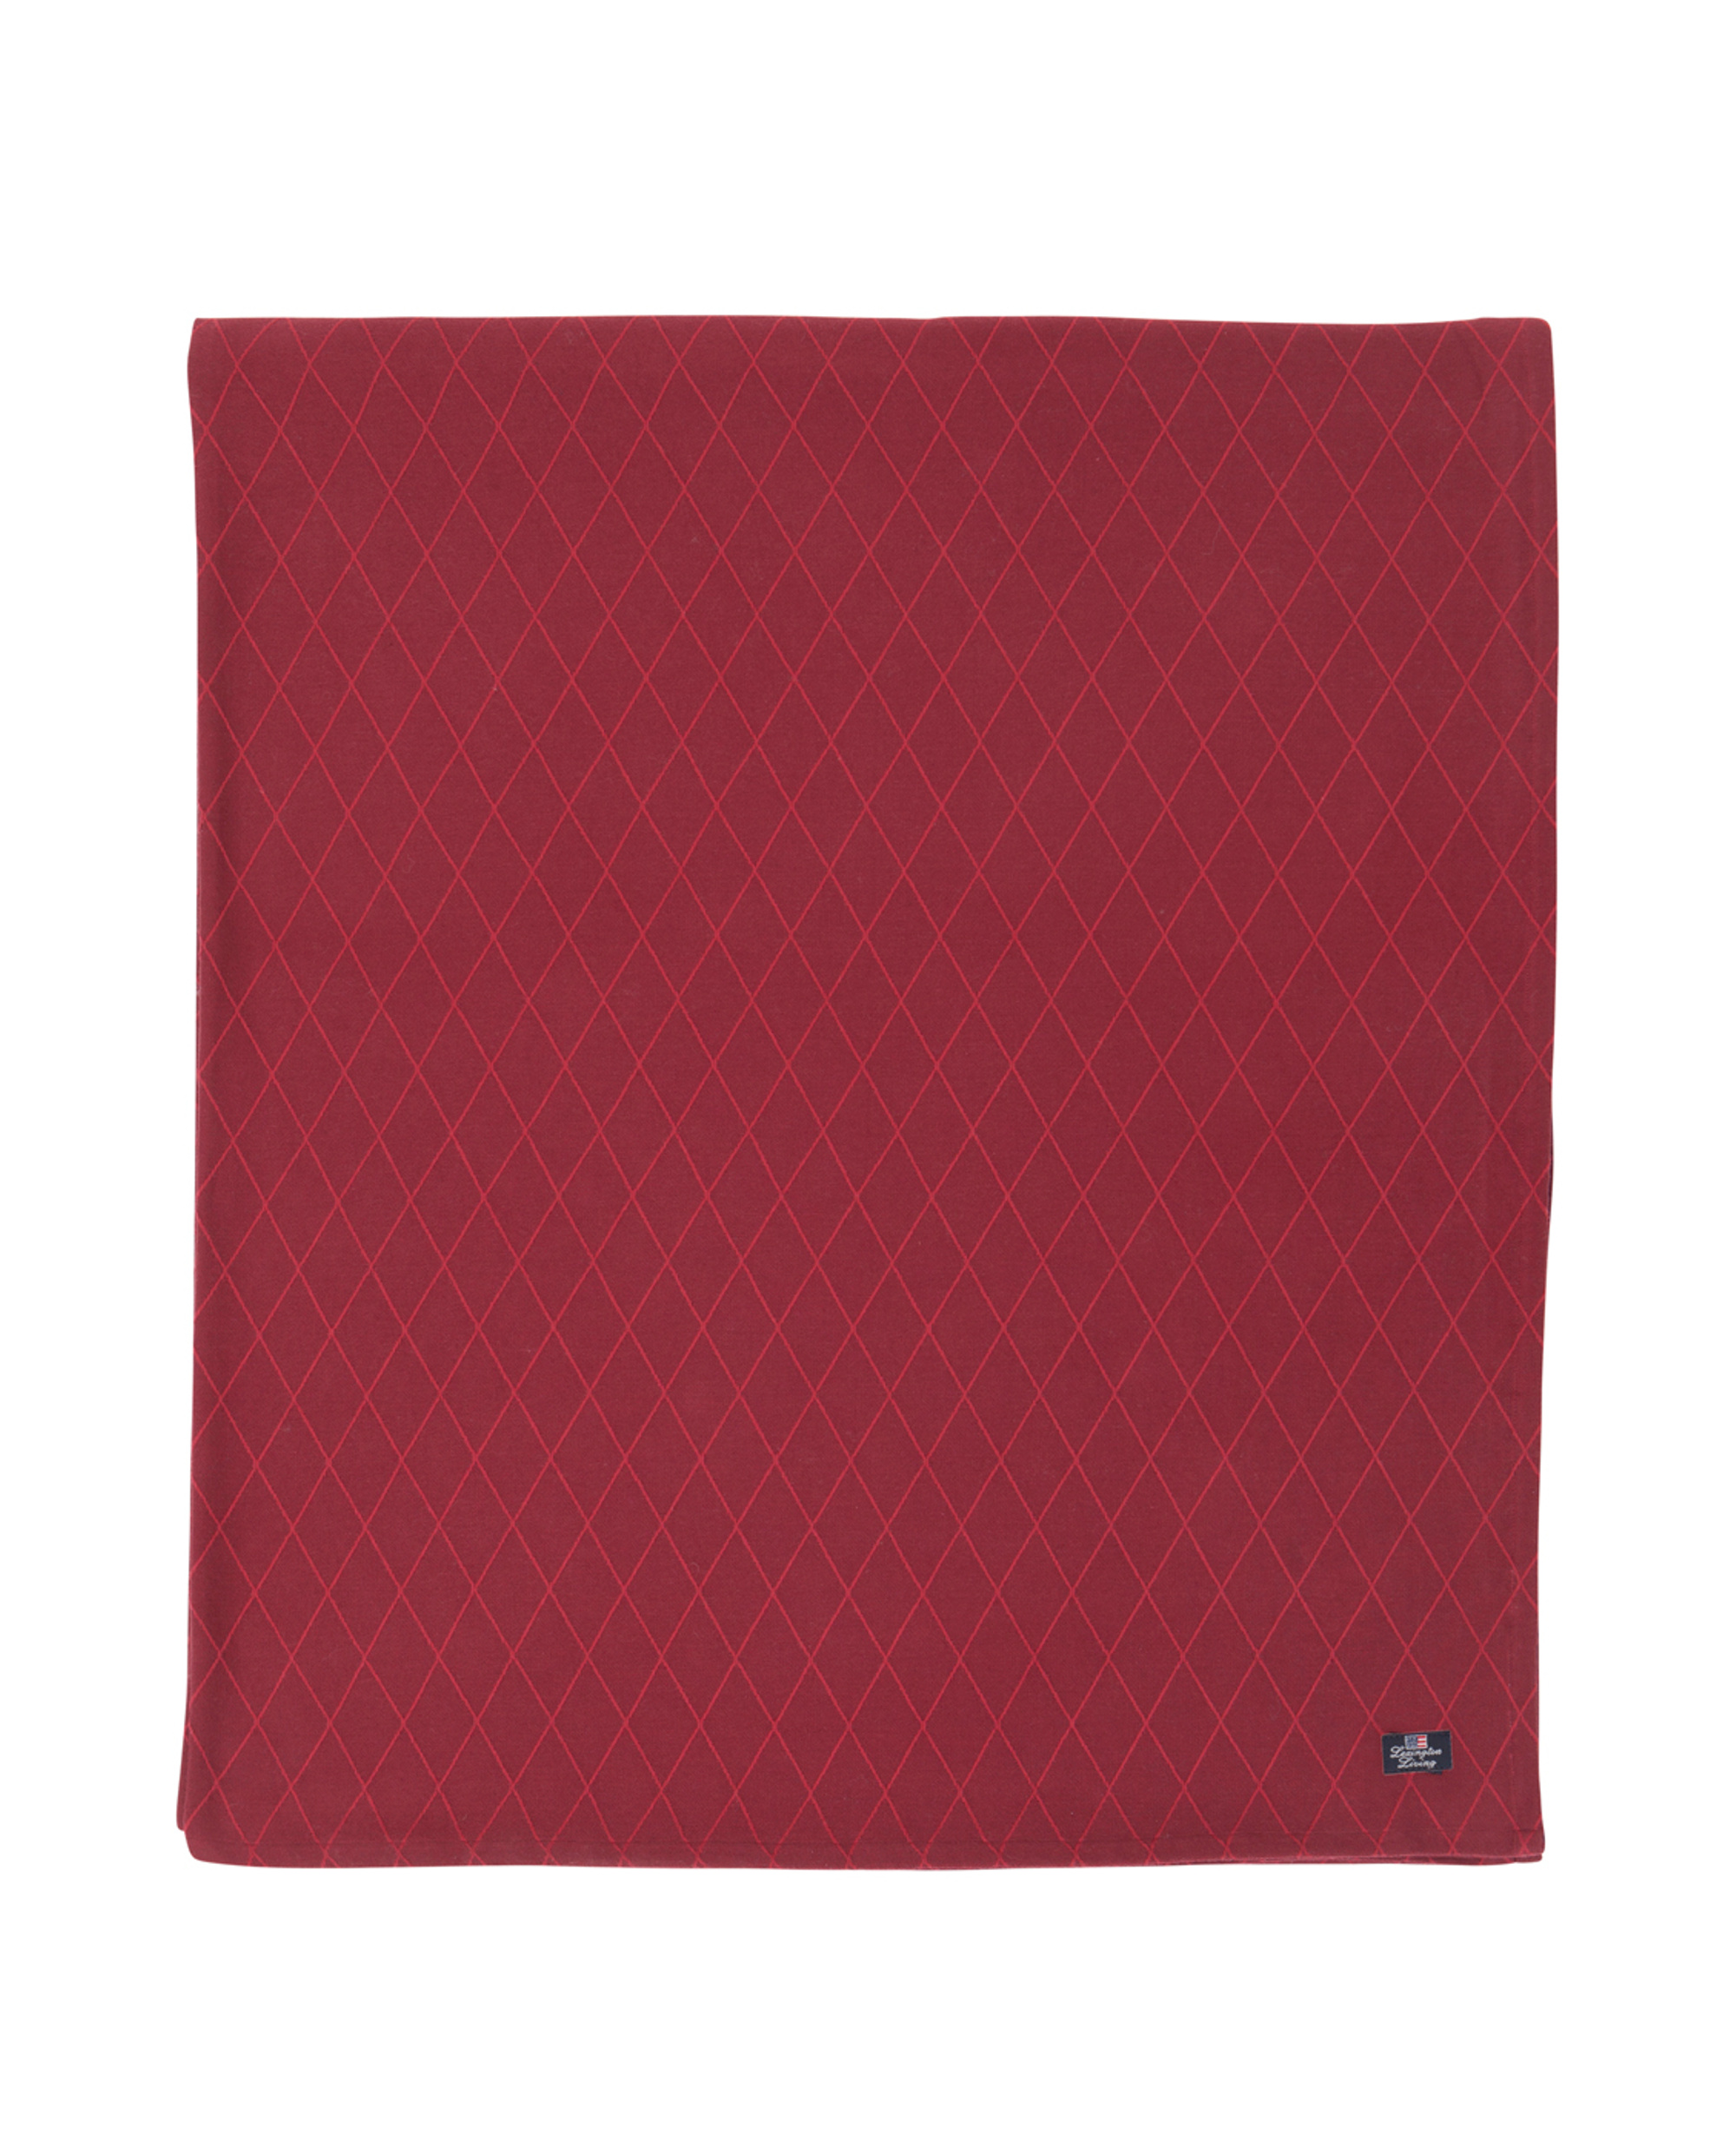 Jacquard Tablecloth, Red